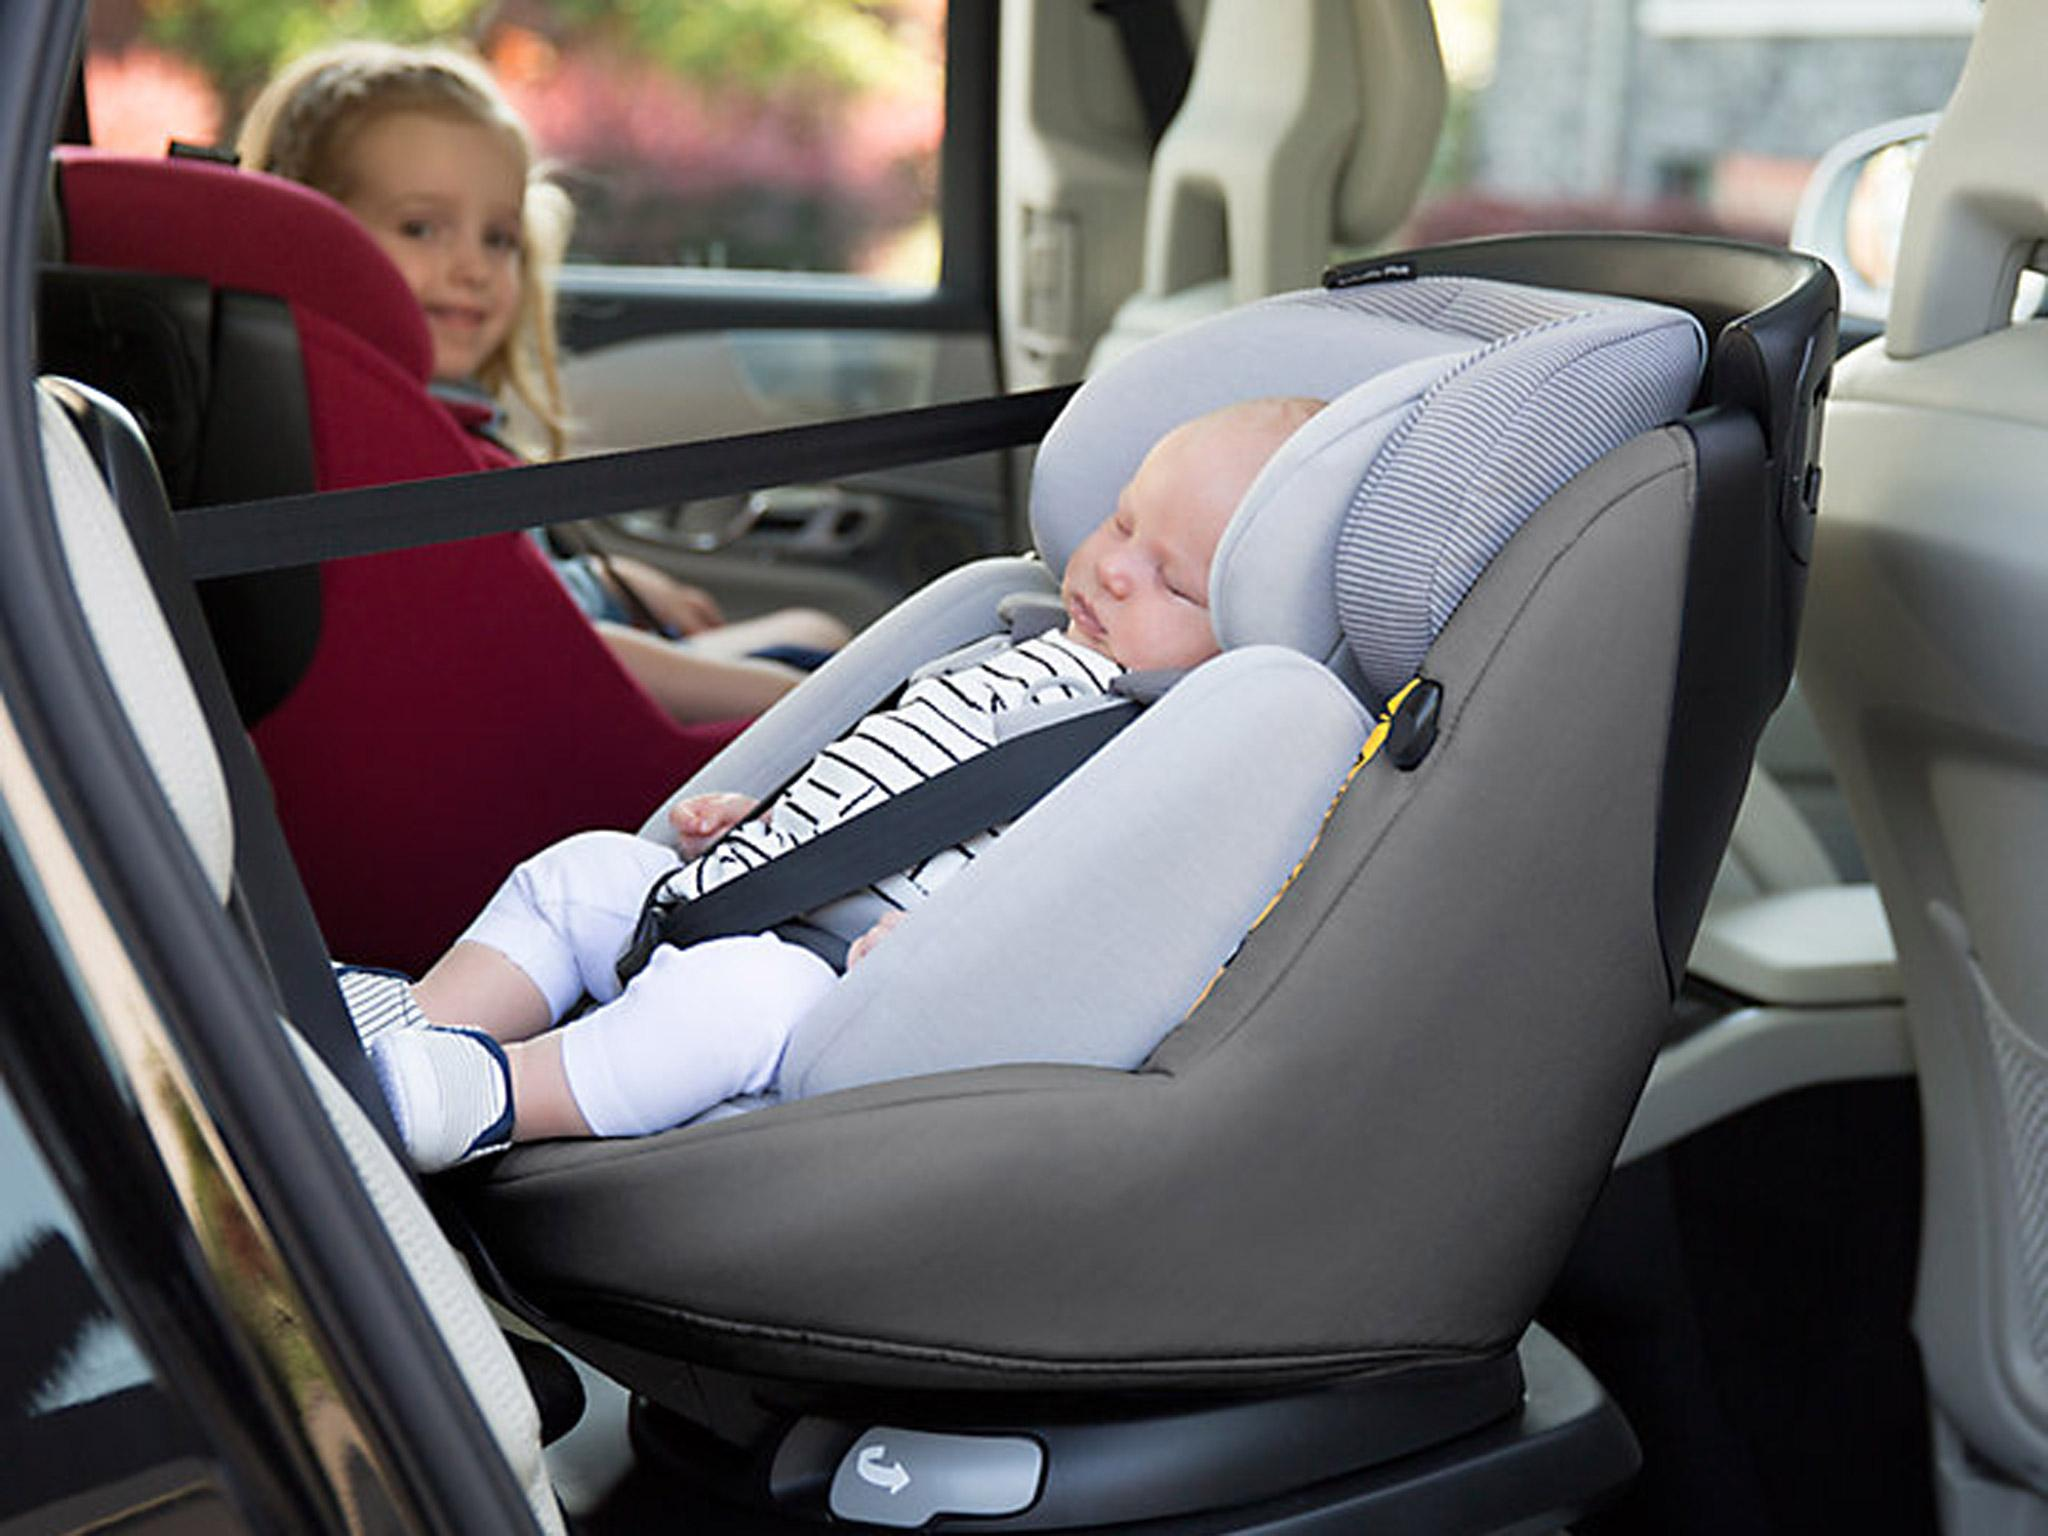 Best Newborn Car Seat >> 12 best car seats | The Independent